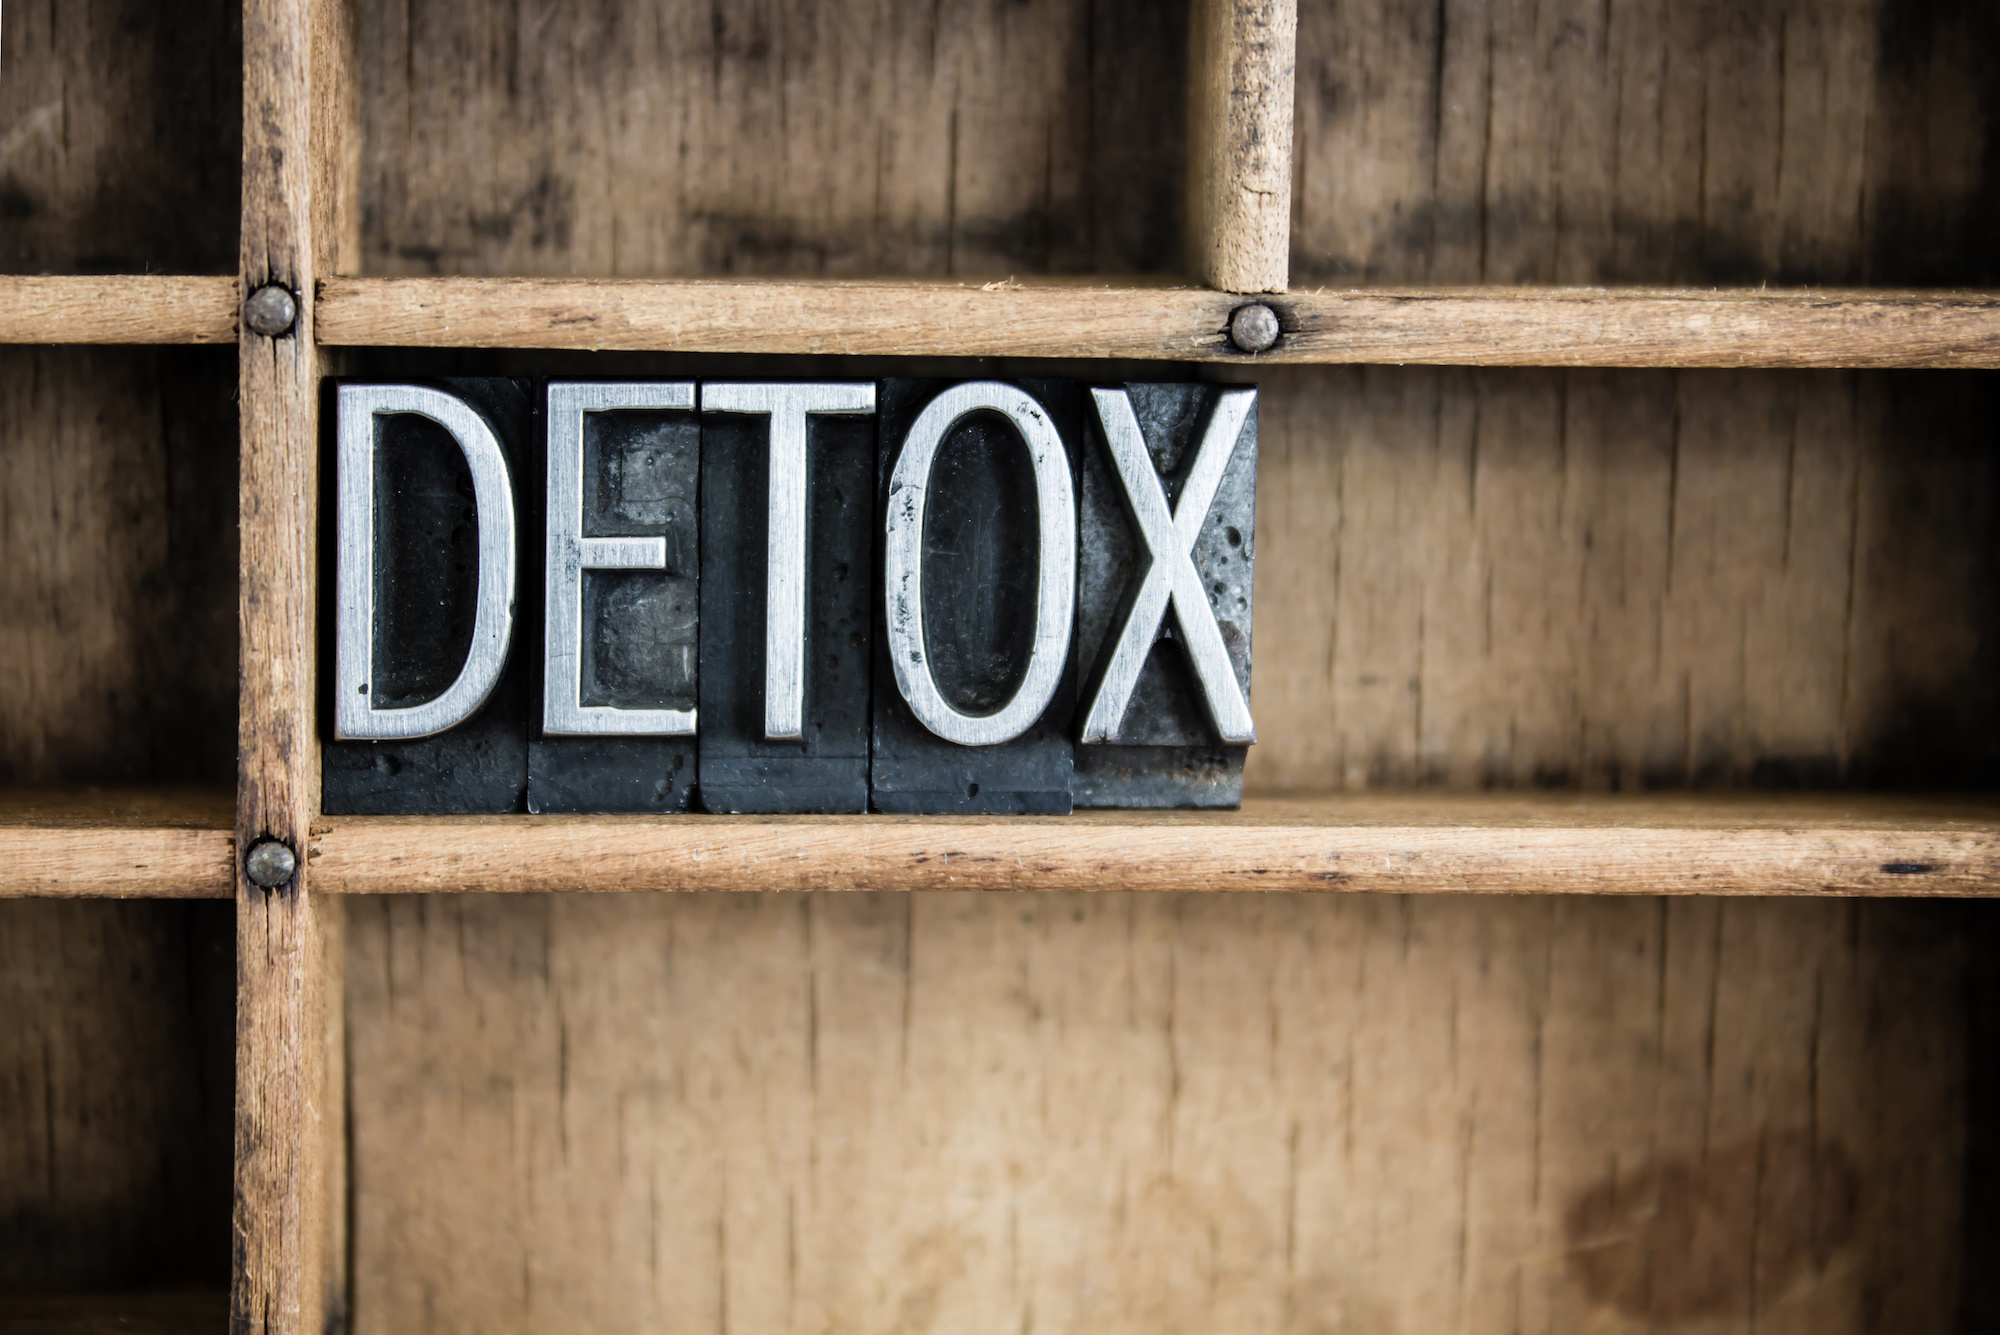 Thumb image for the post on Drug Detox – Diagnosing the Symptoms and Finding Help